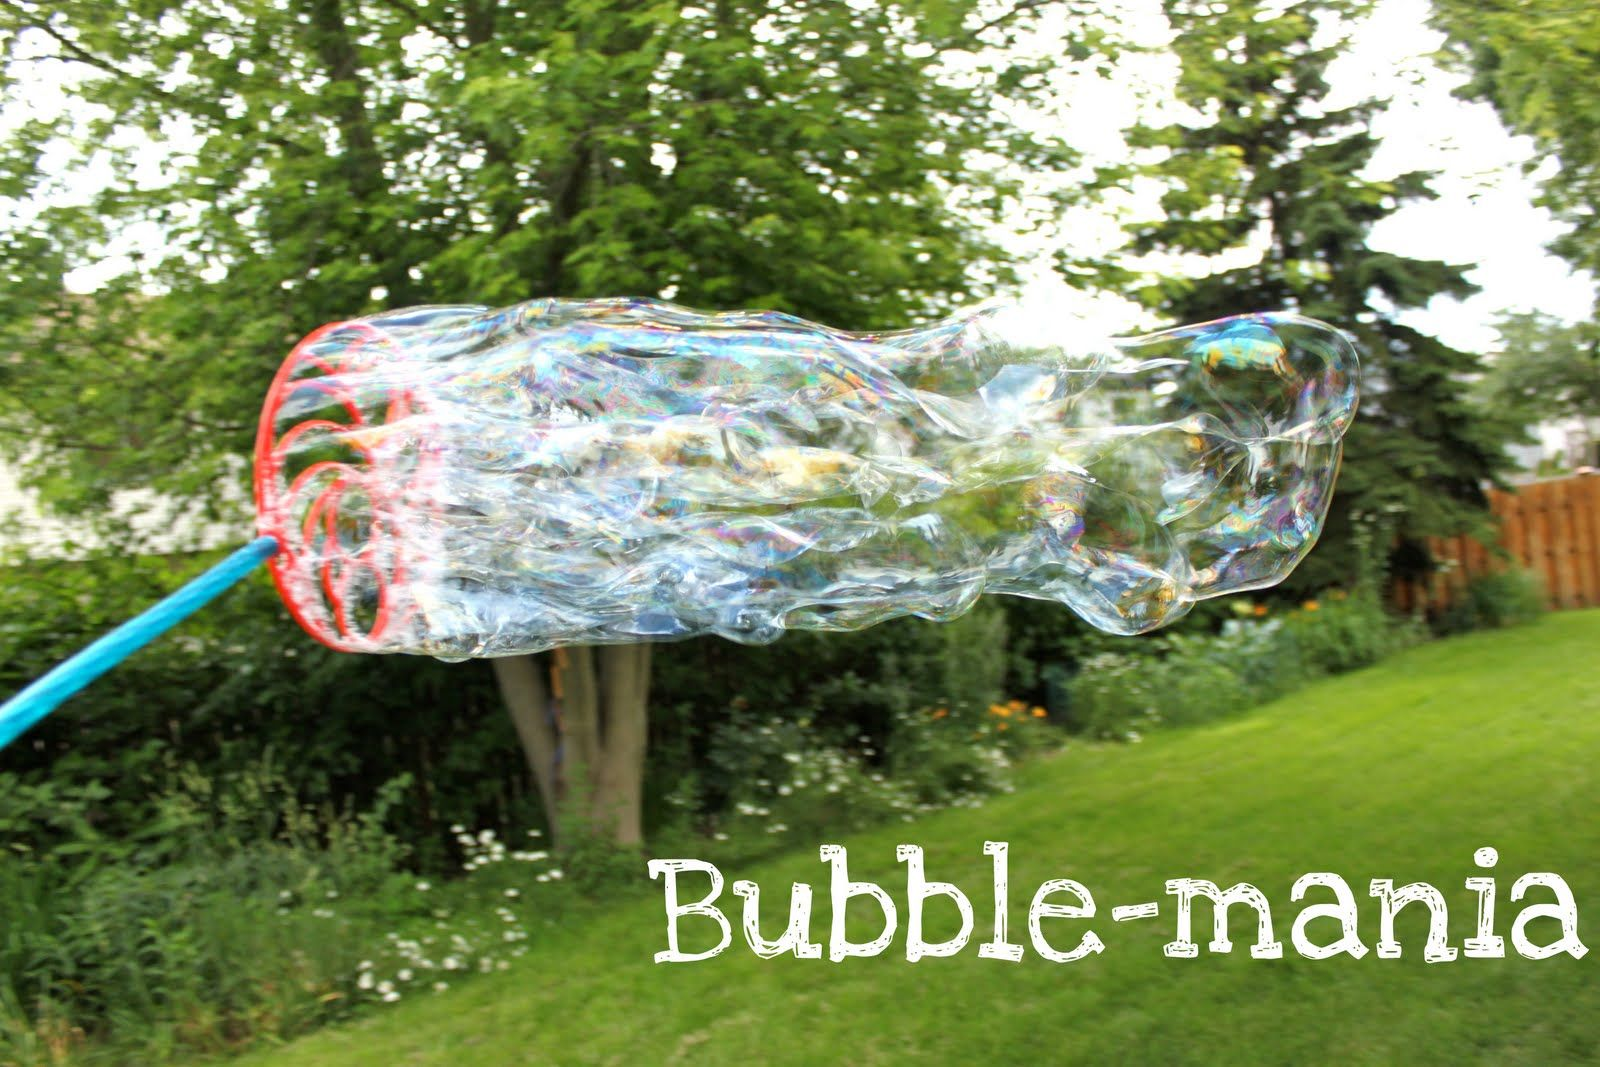 The Best Bubbles Ever   6 cups water  2 cups Dawn dishwashing liquid  3/4 cup light corn syrup